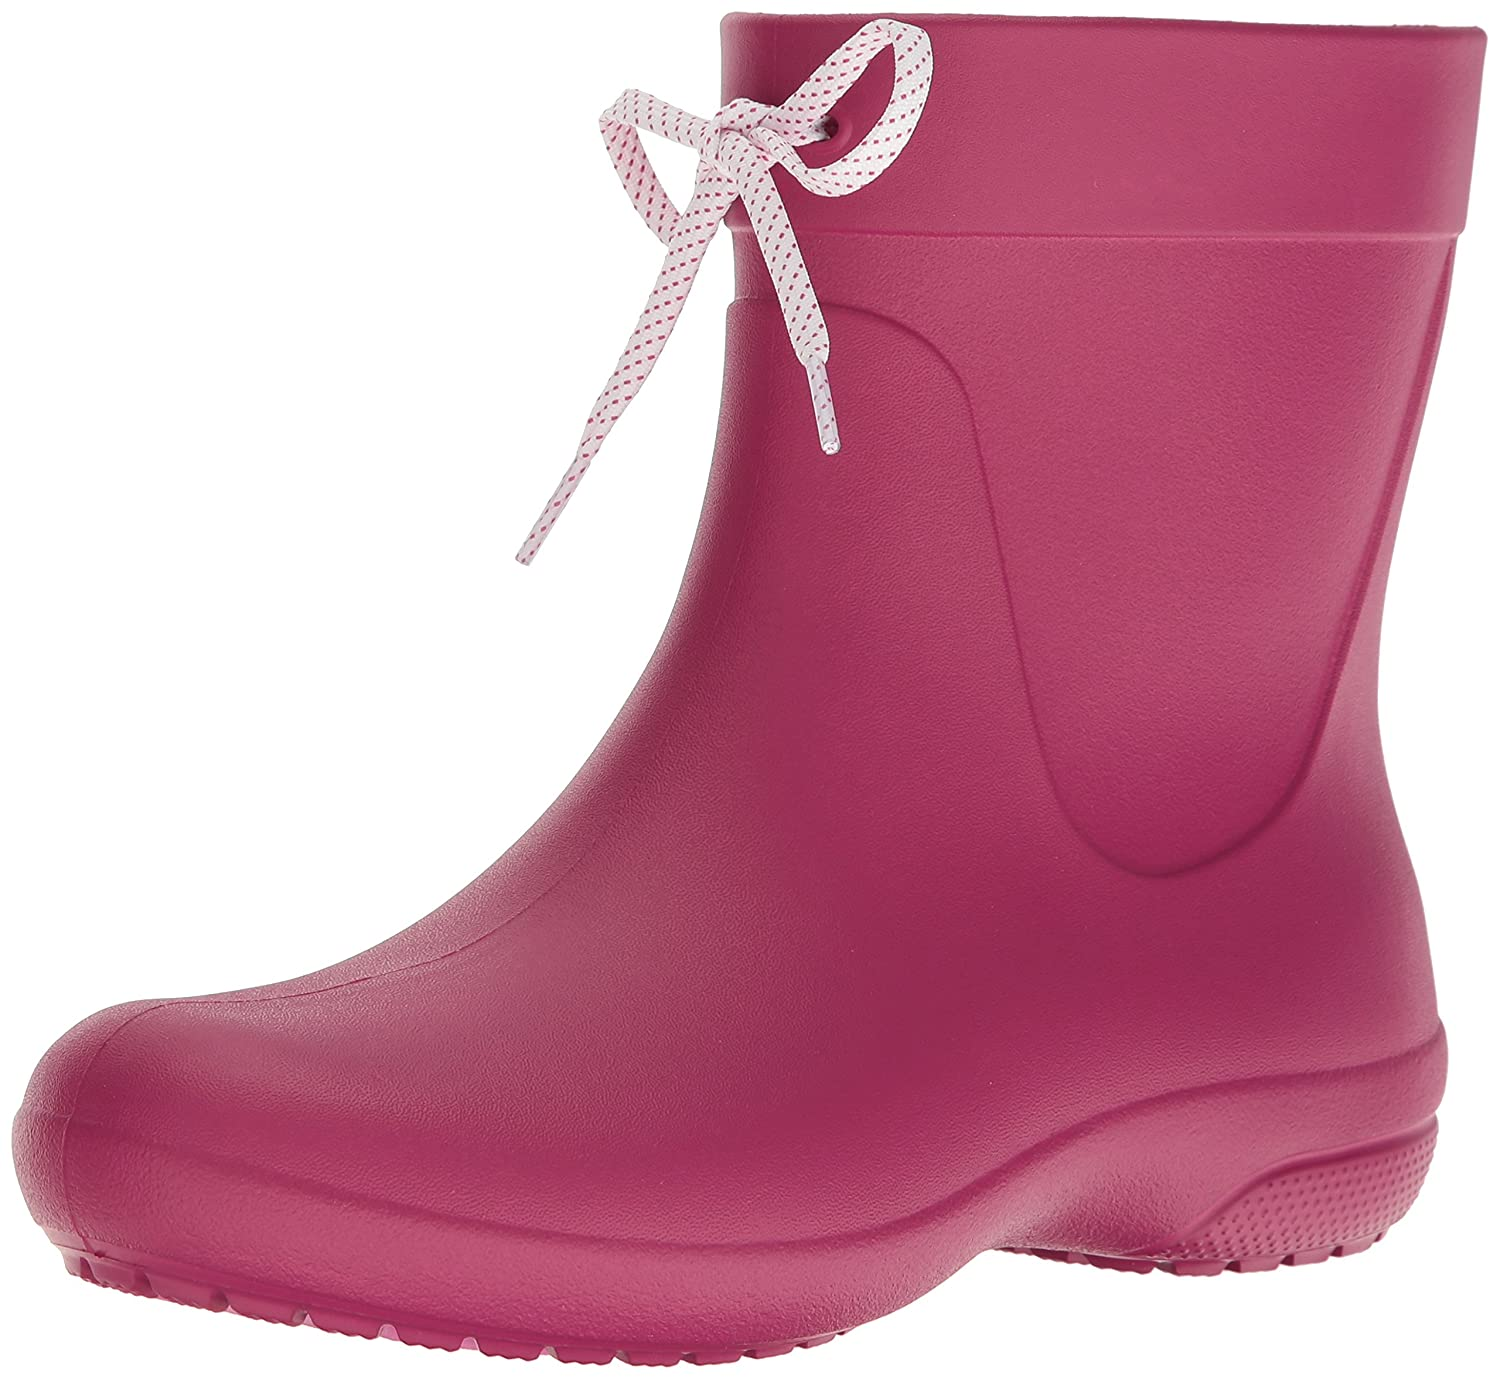 Crocs Freesail Rain Shorty Femme Rain Boots, Bottes Femme Rose B004P5O5AW (Berry) 0407dcb - epictionpvp.space